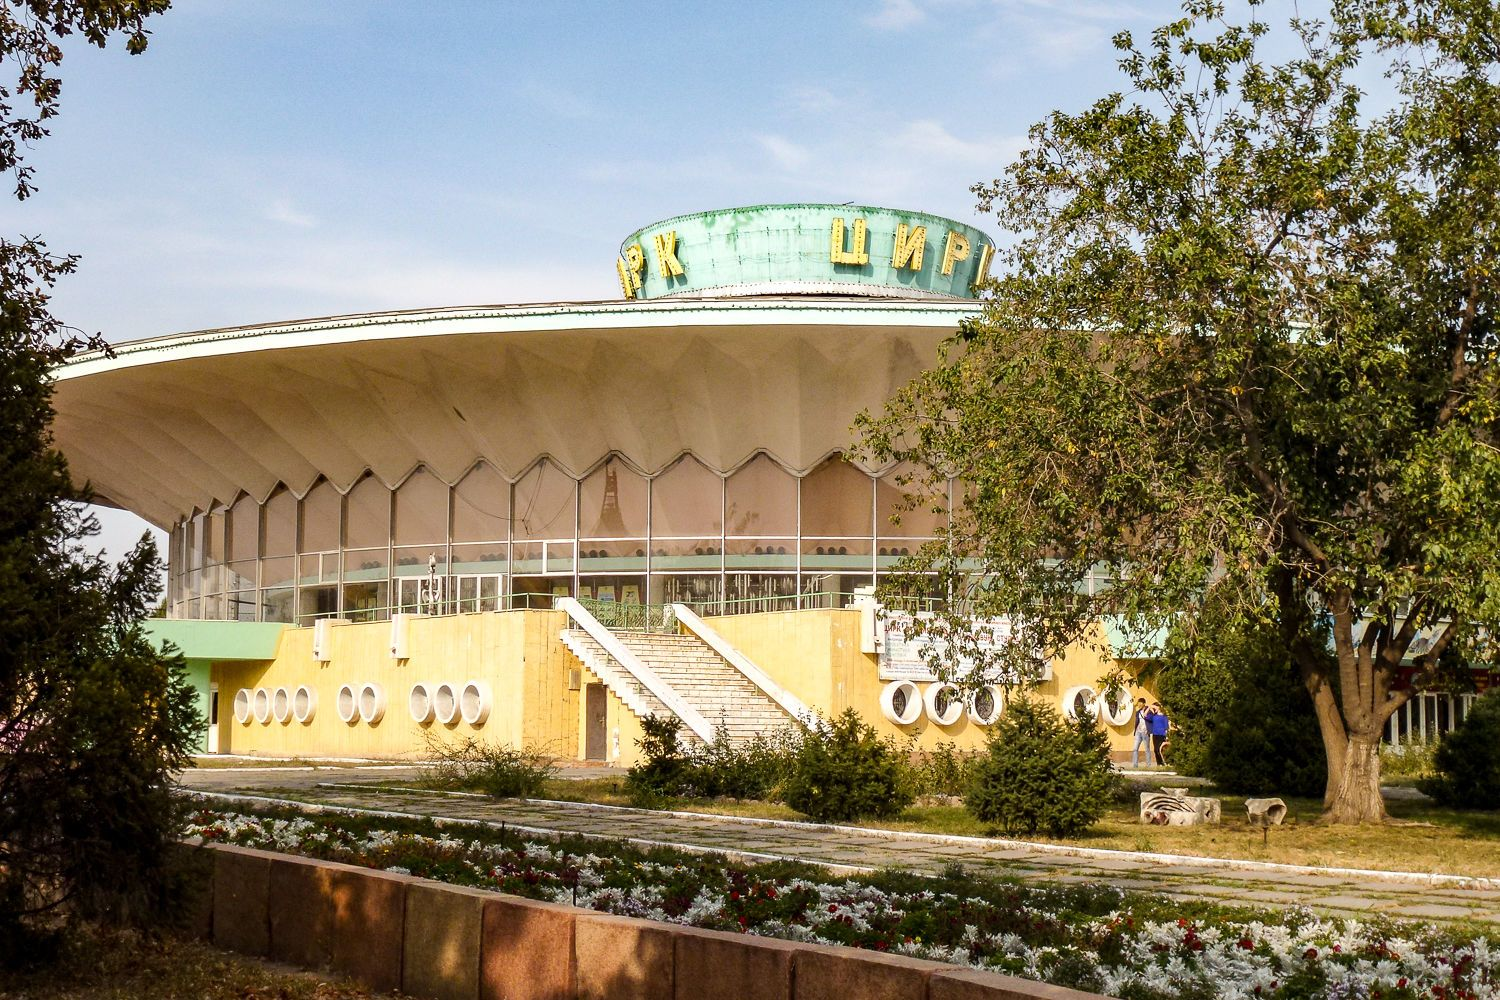 Round building of the permanent circus in Bishkek City Tour